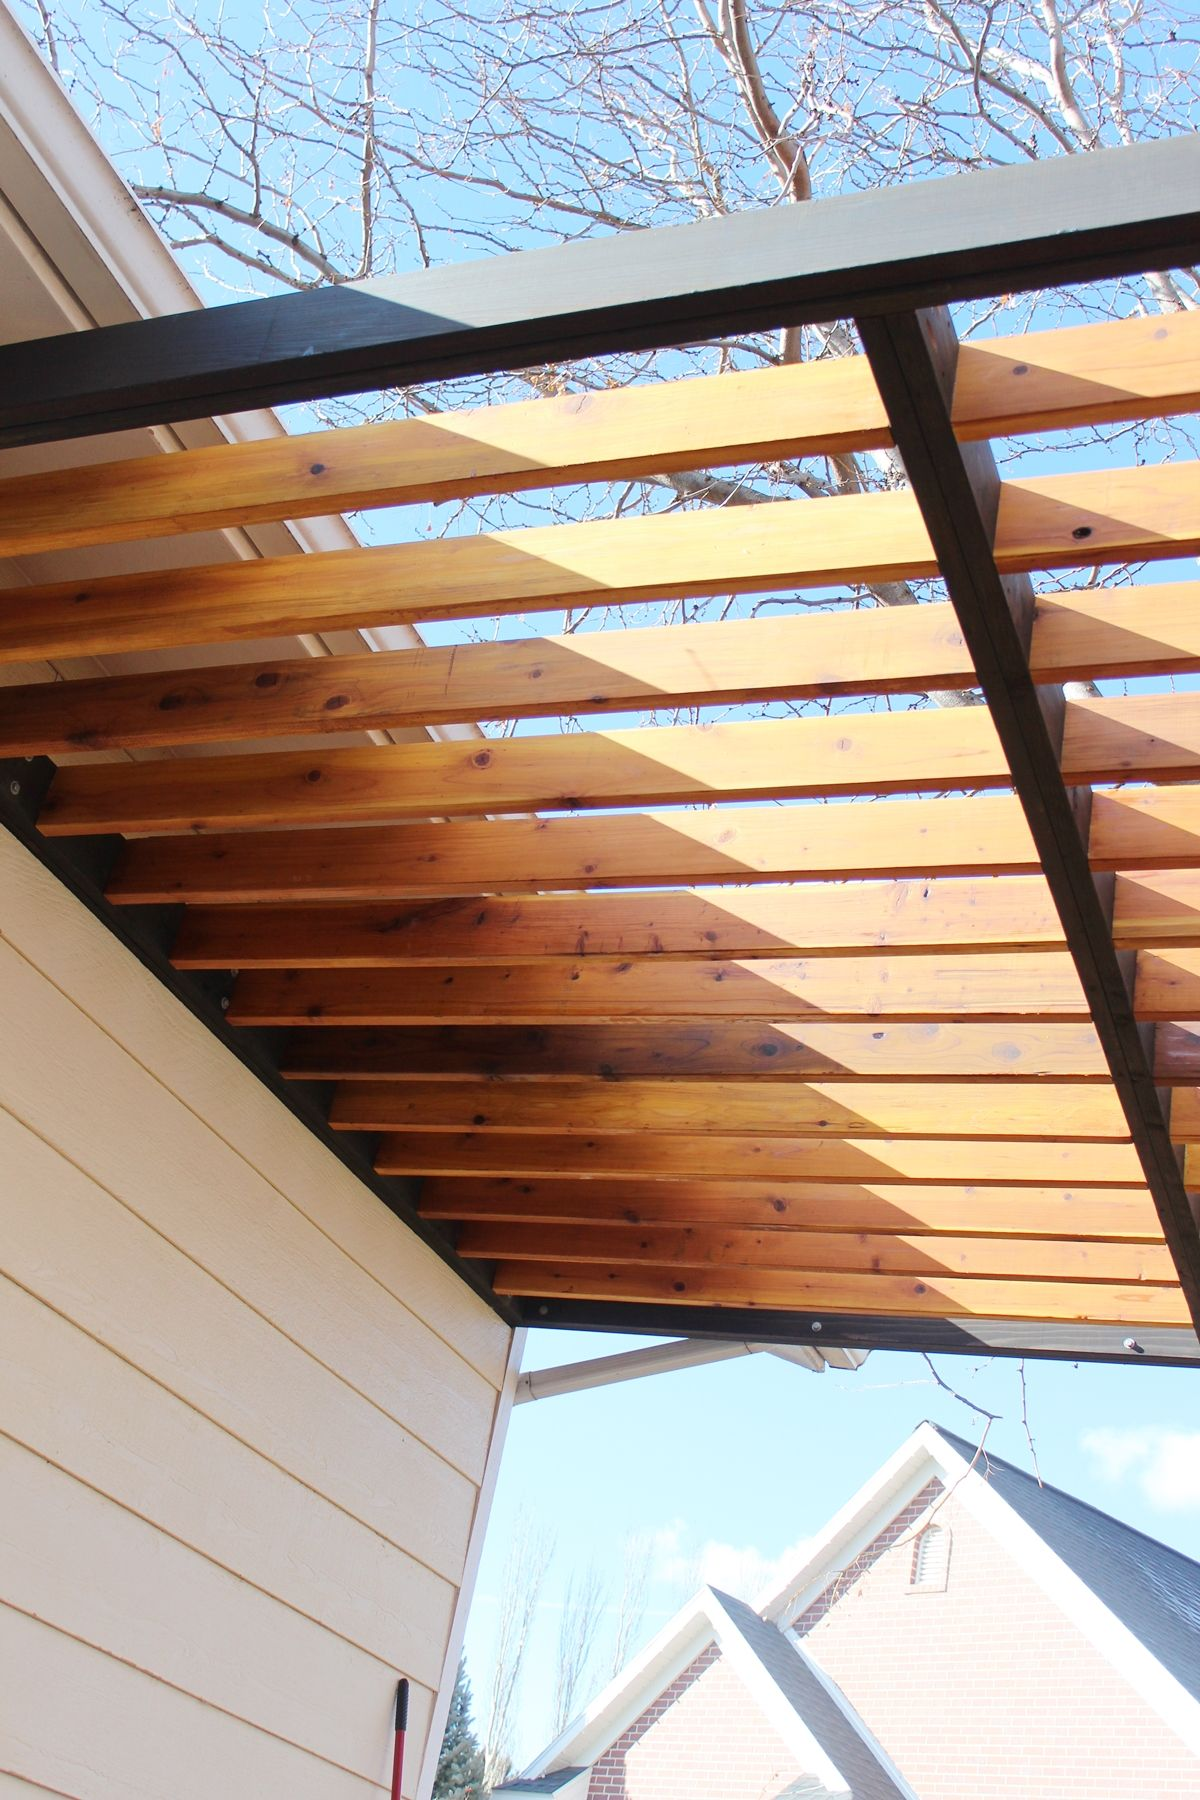 installing the second rafter of each line